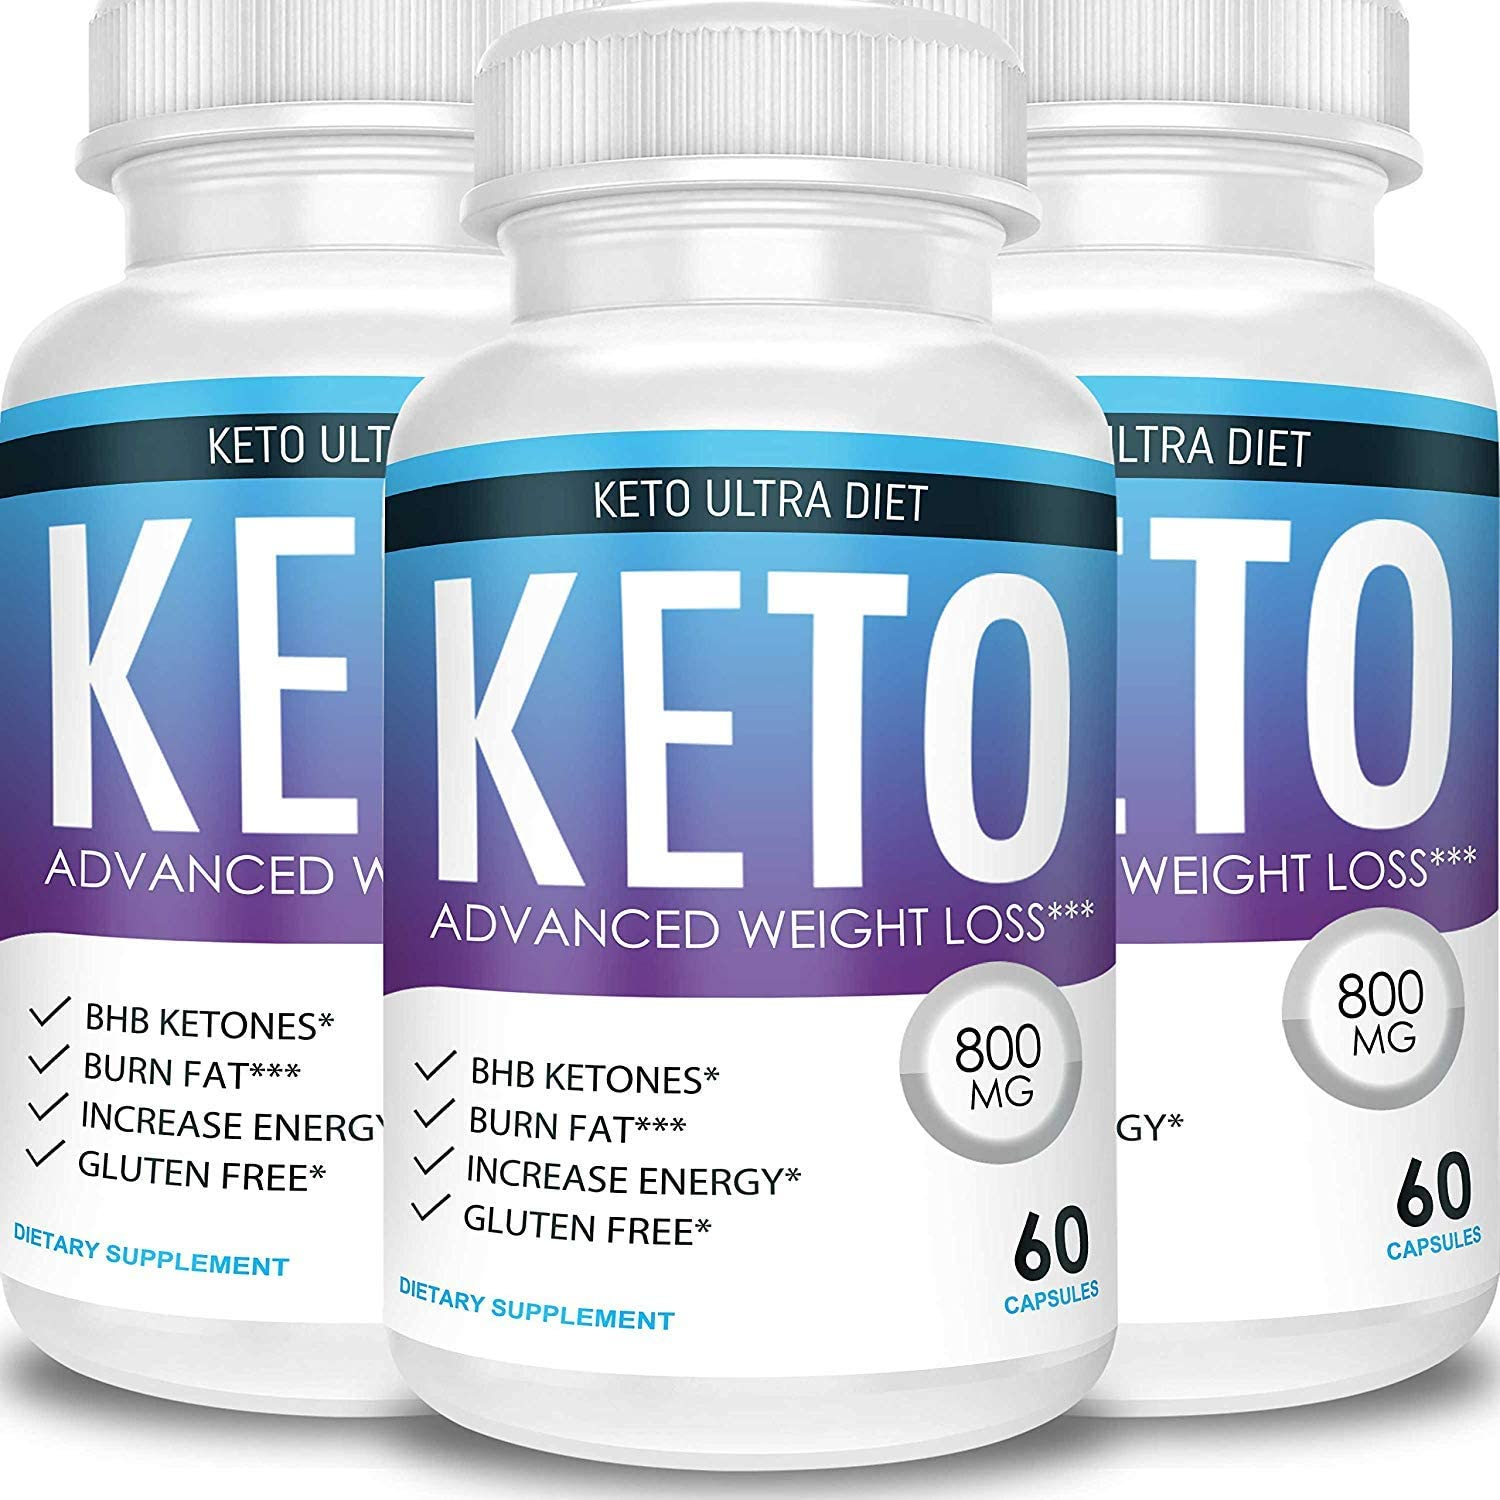 side effects of the keto ultra diet